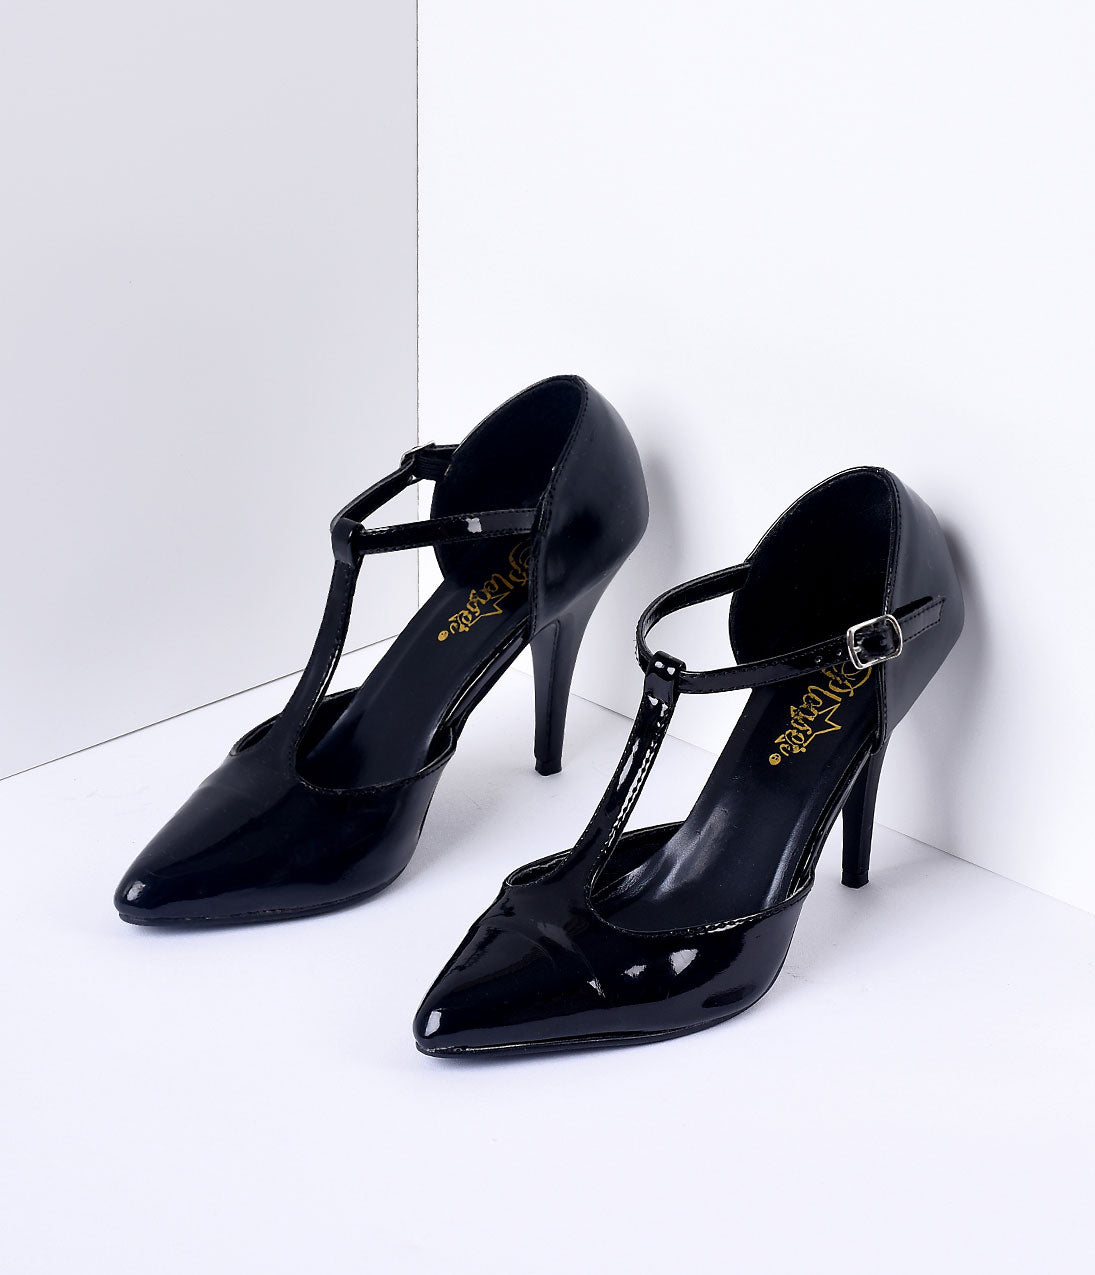 Vintage Style Shoes, Vintage Inspired Shoes 1920S Style Black T-Strap Heels $68.00 AT vintagedancer.com